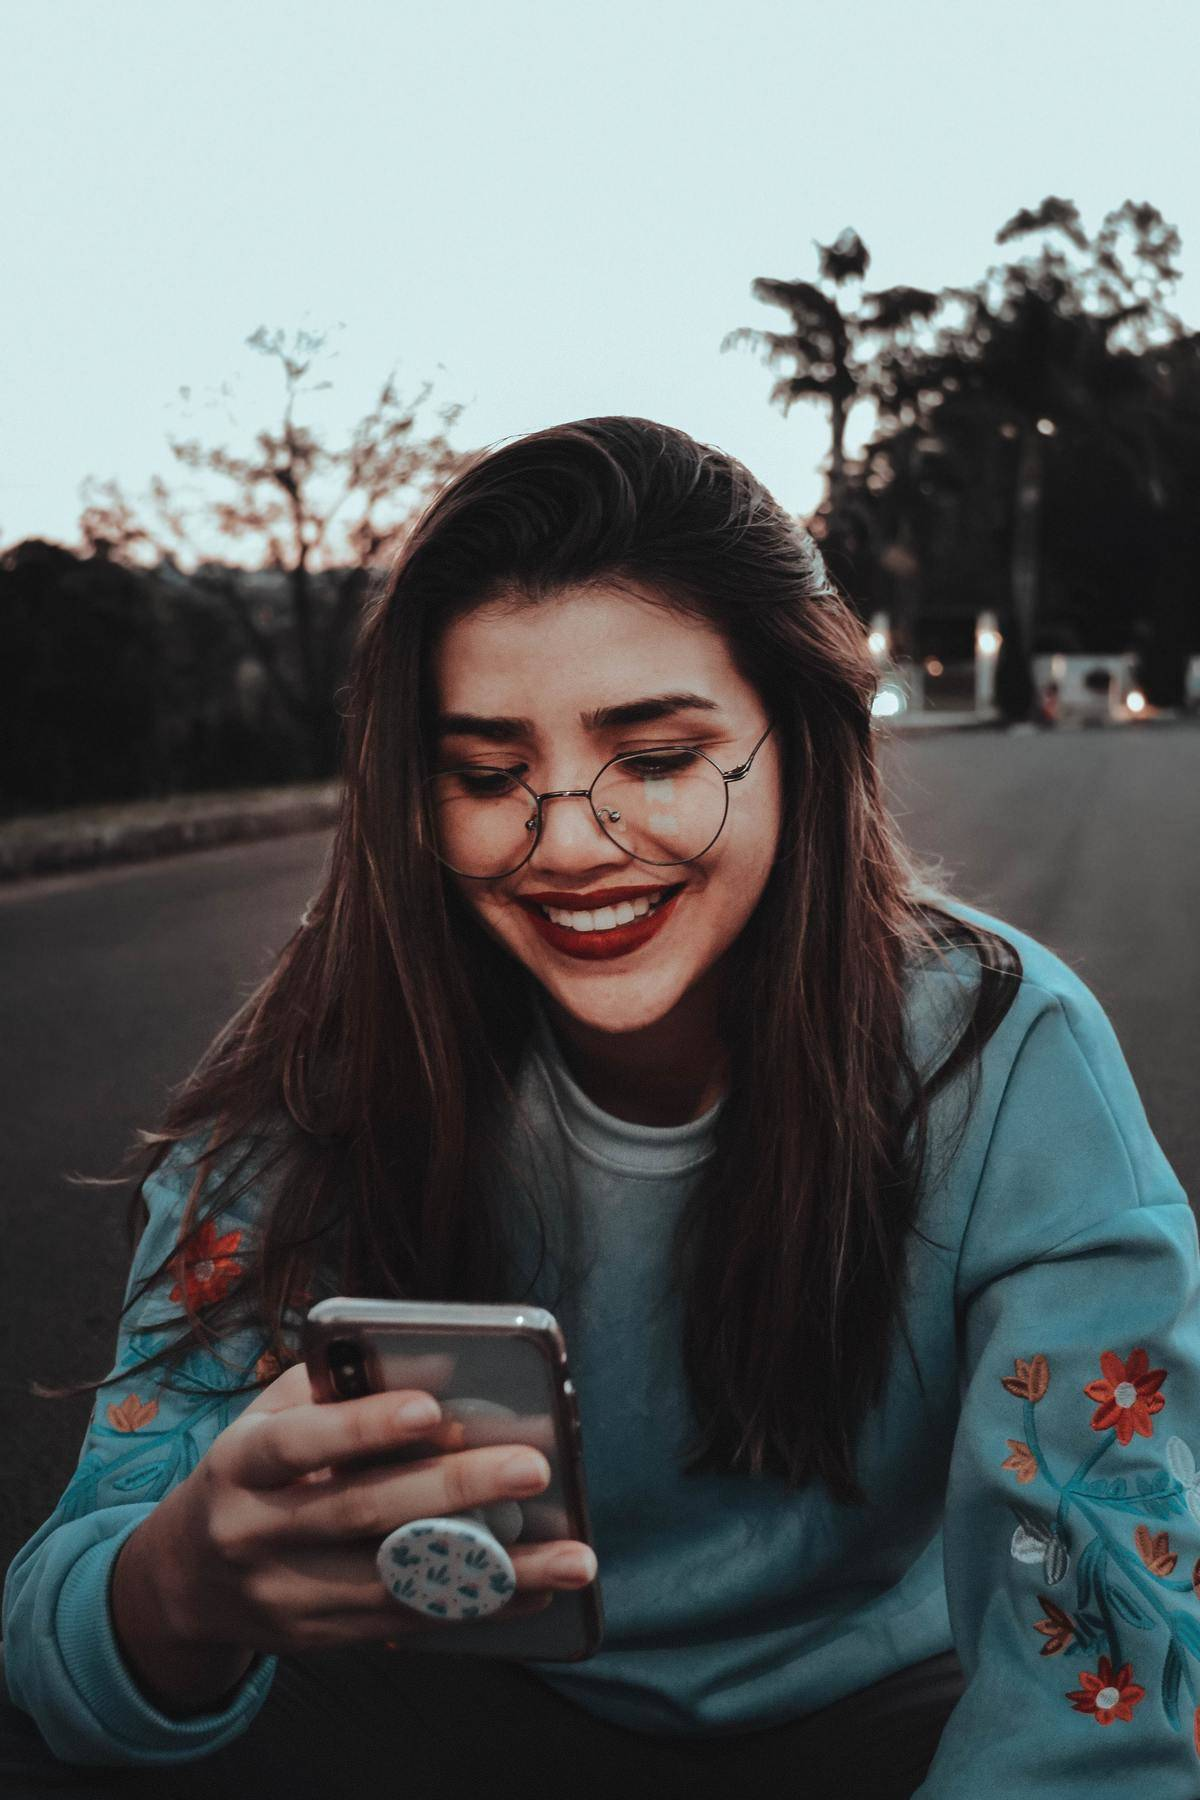 woman looking down at phone screen, smiling